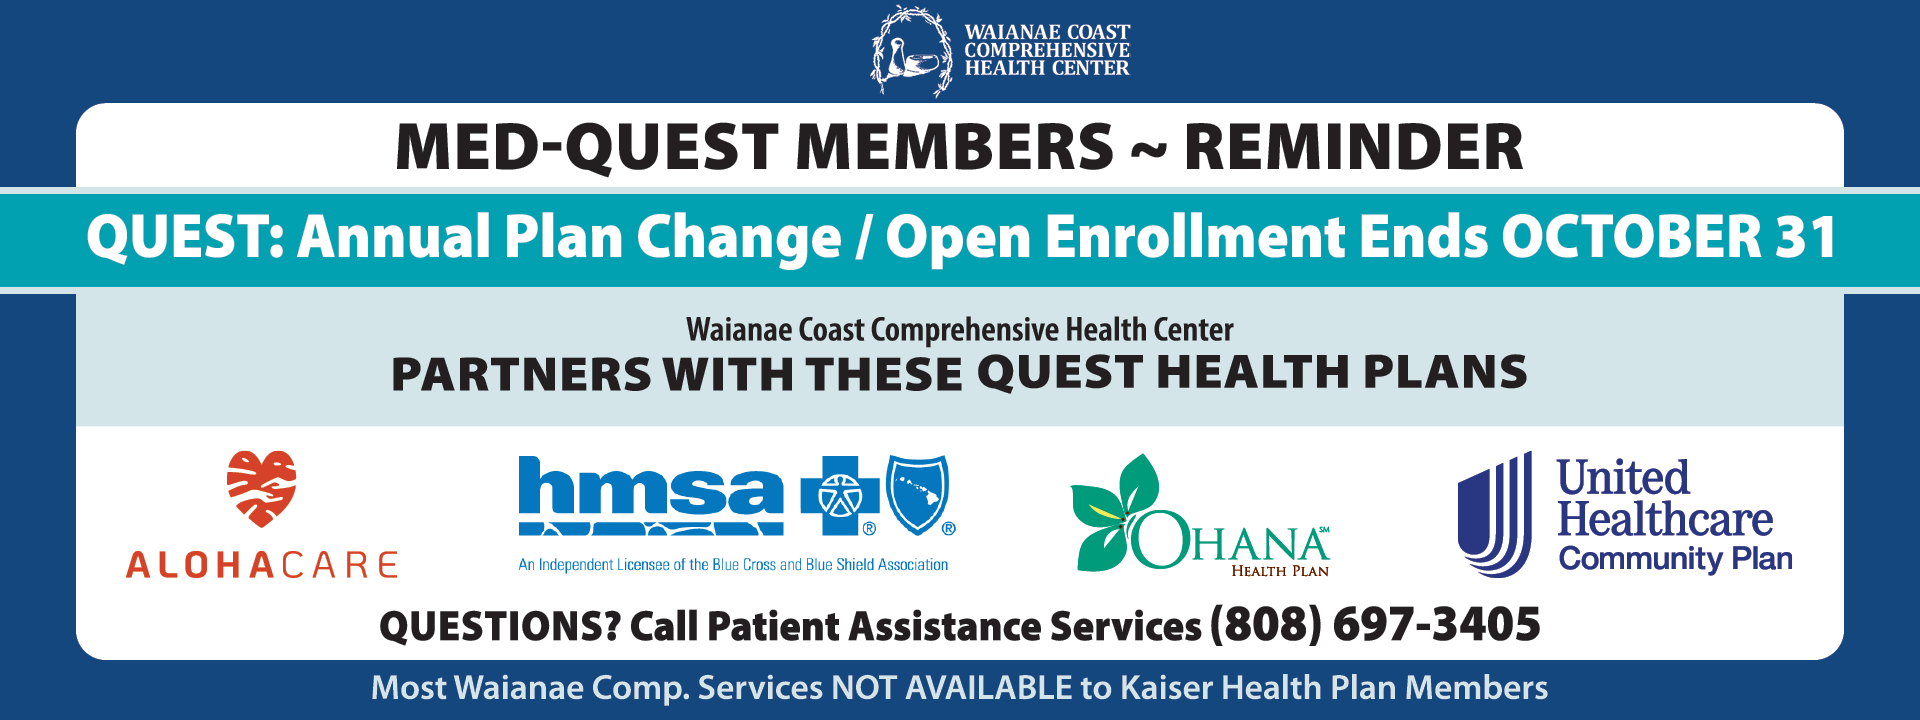 2020 Med-Quest Open Enrollment